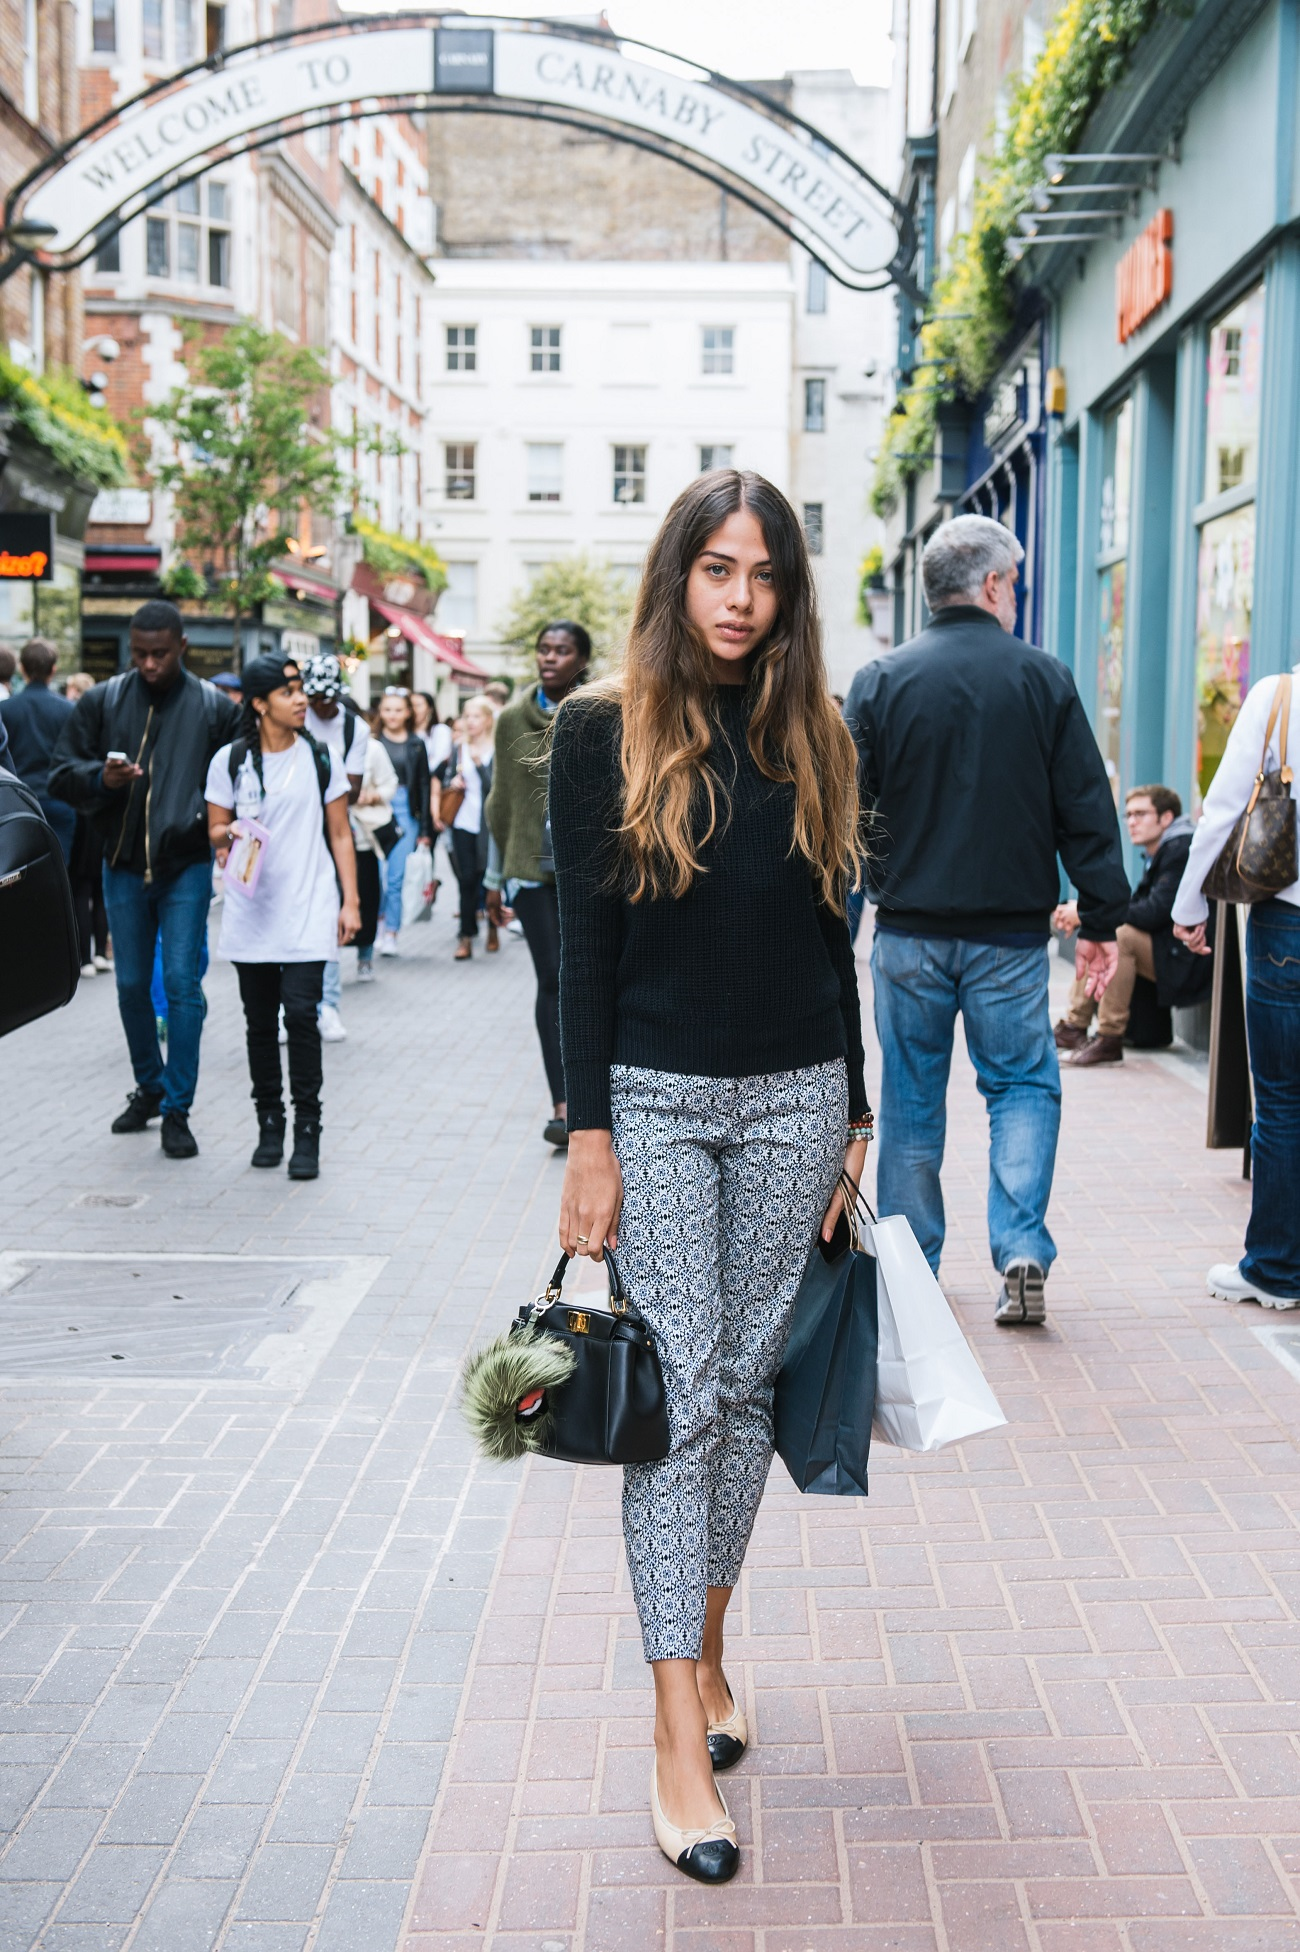 Get Your Style Fix With London Fashion Week At Carnaby